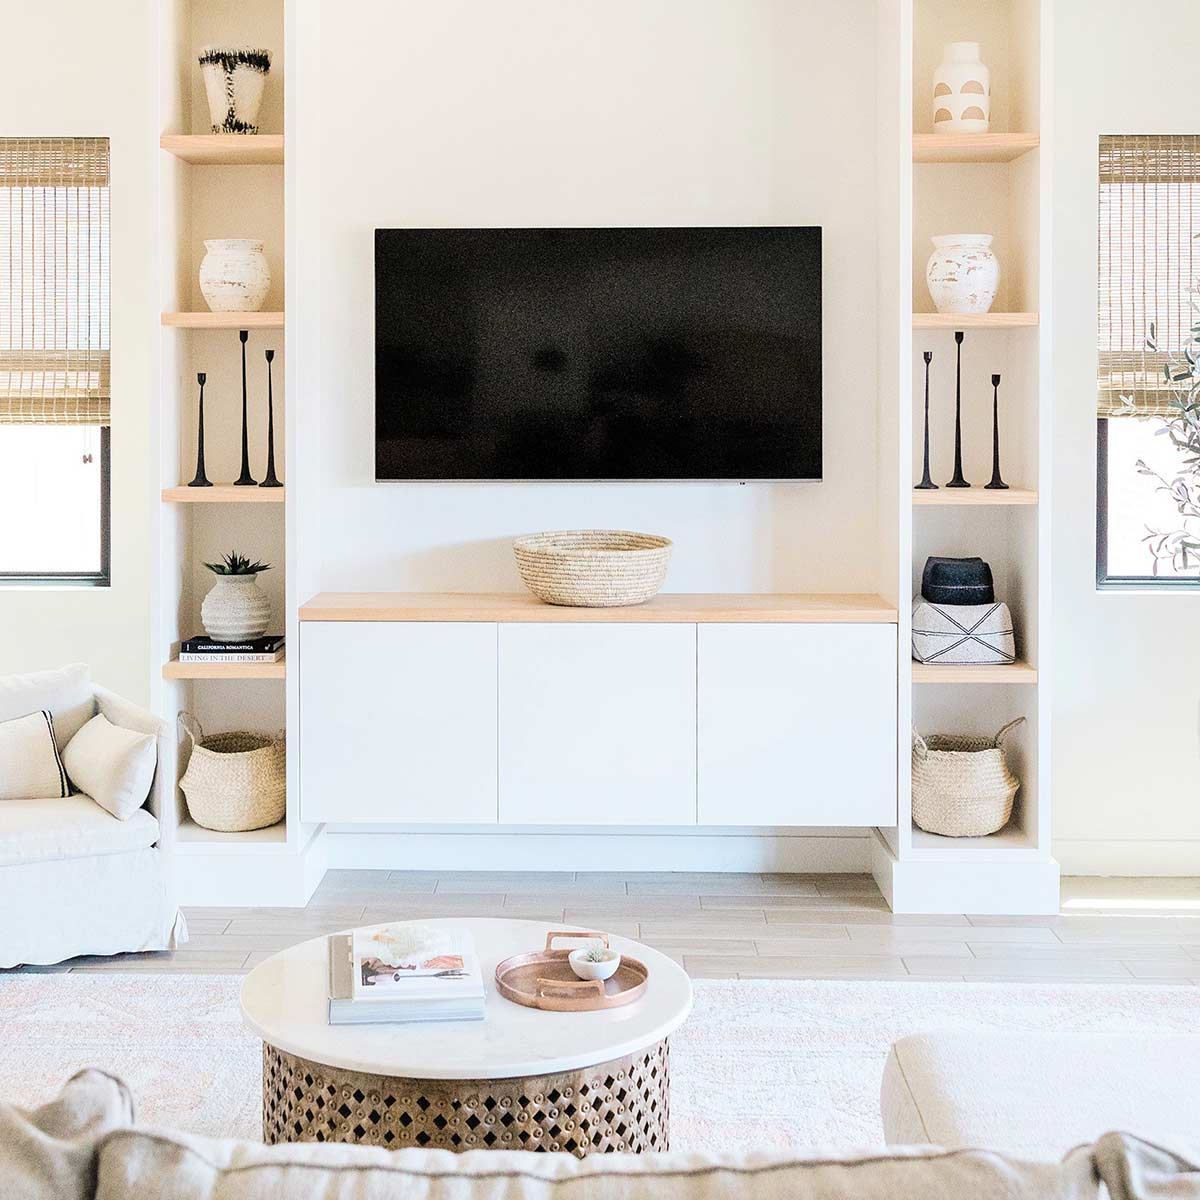 Living room with white and neutral decor looks amazing after weekend decluttering.